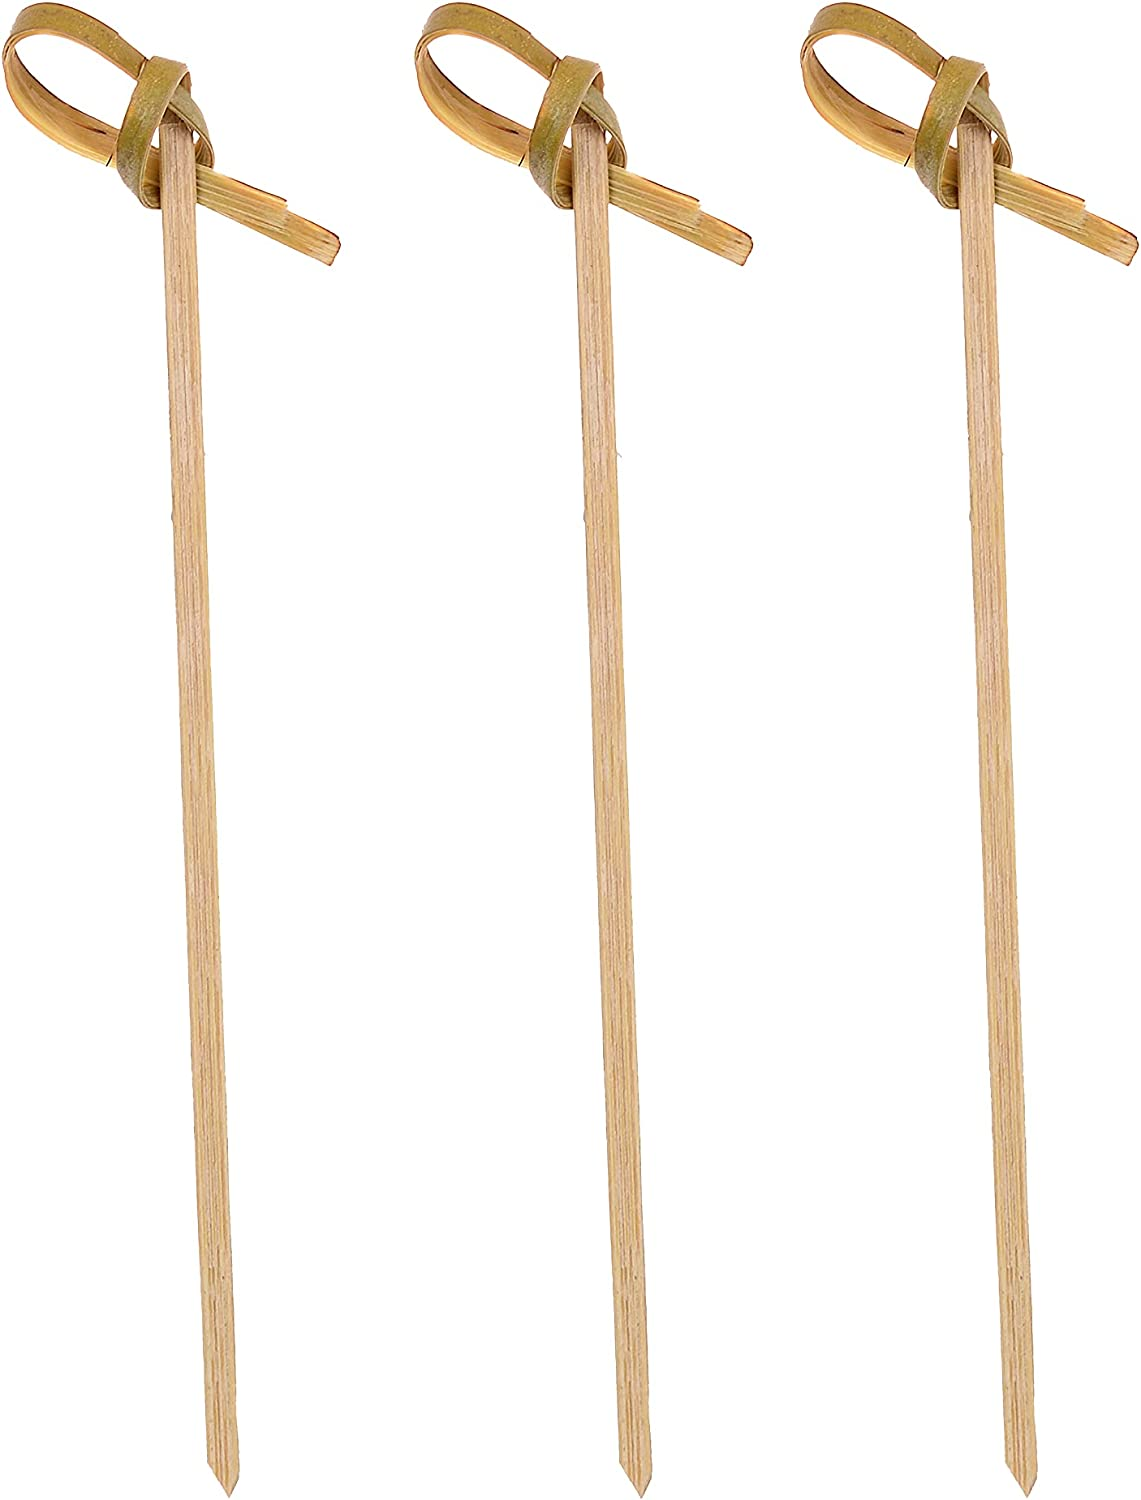 Bamboo Cocktail Picks - 4.1 inch Pack With [Alternative dealer] 300 Kno Max 54% OFF Looped of